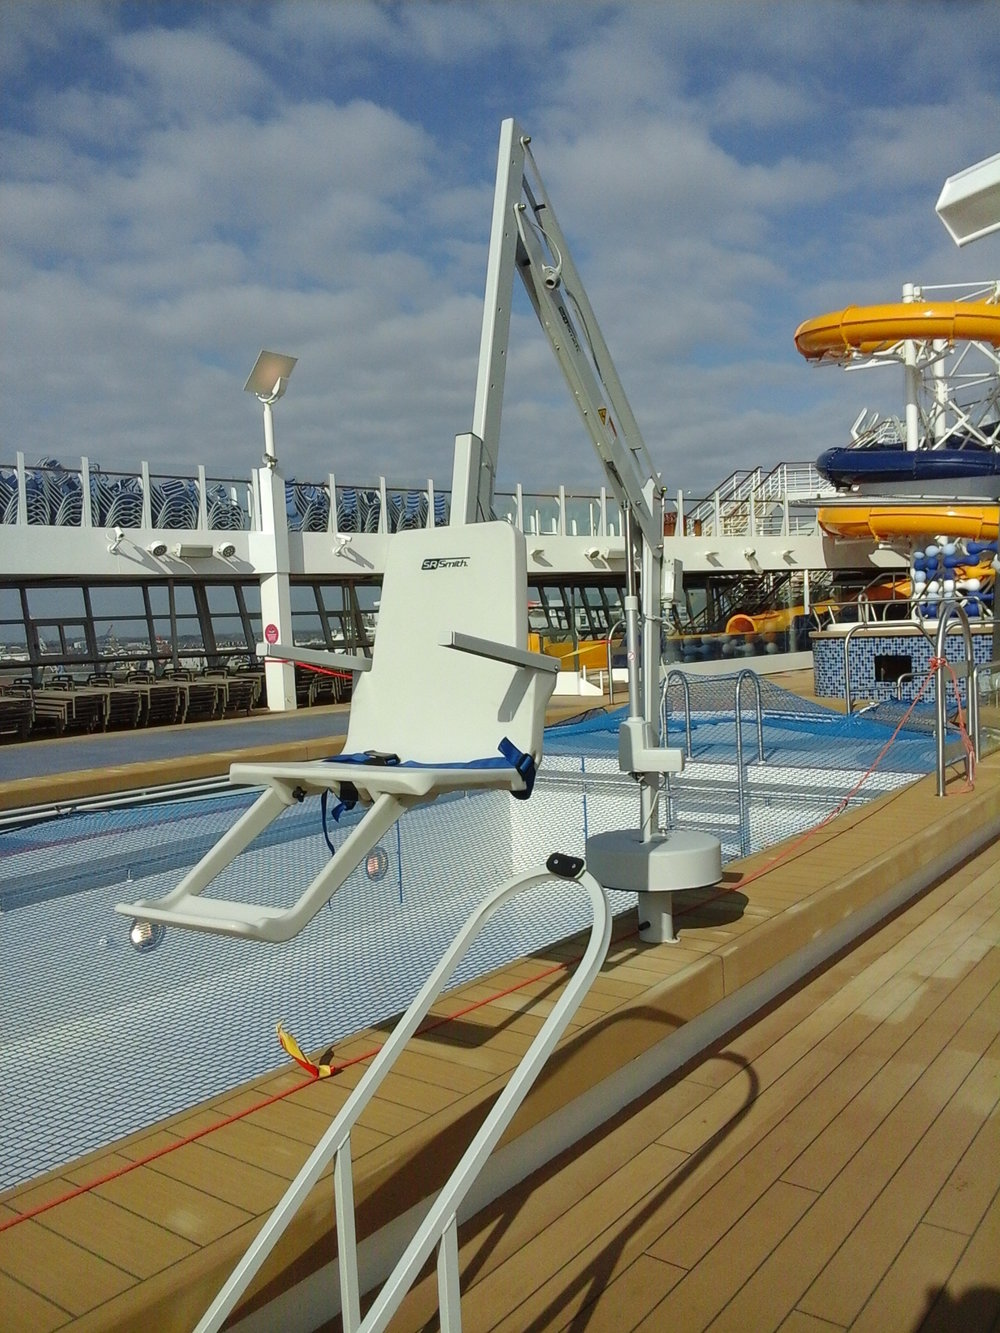 splash-pool-hoist-cruise-liner-disabled-access.jpg